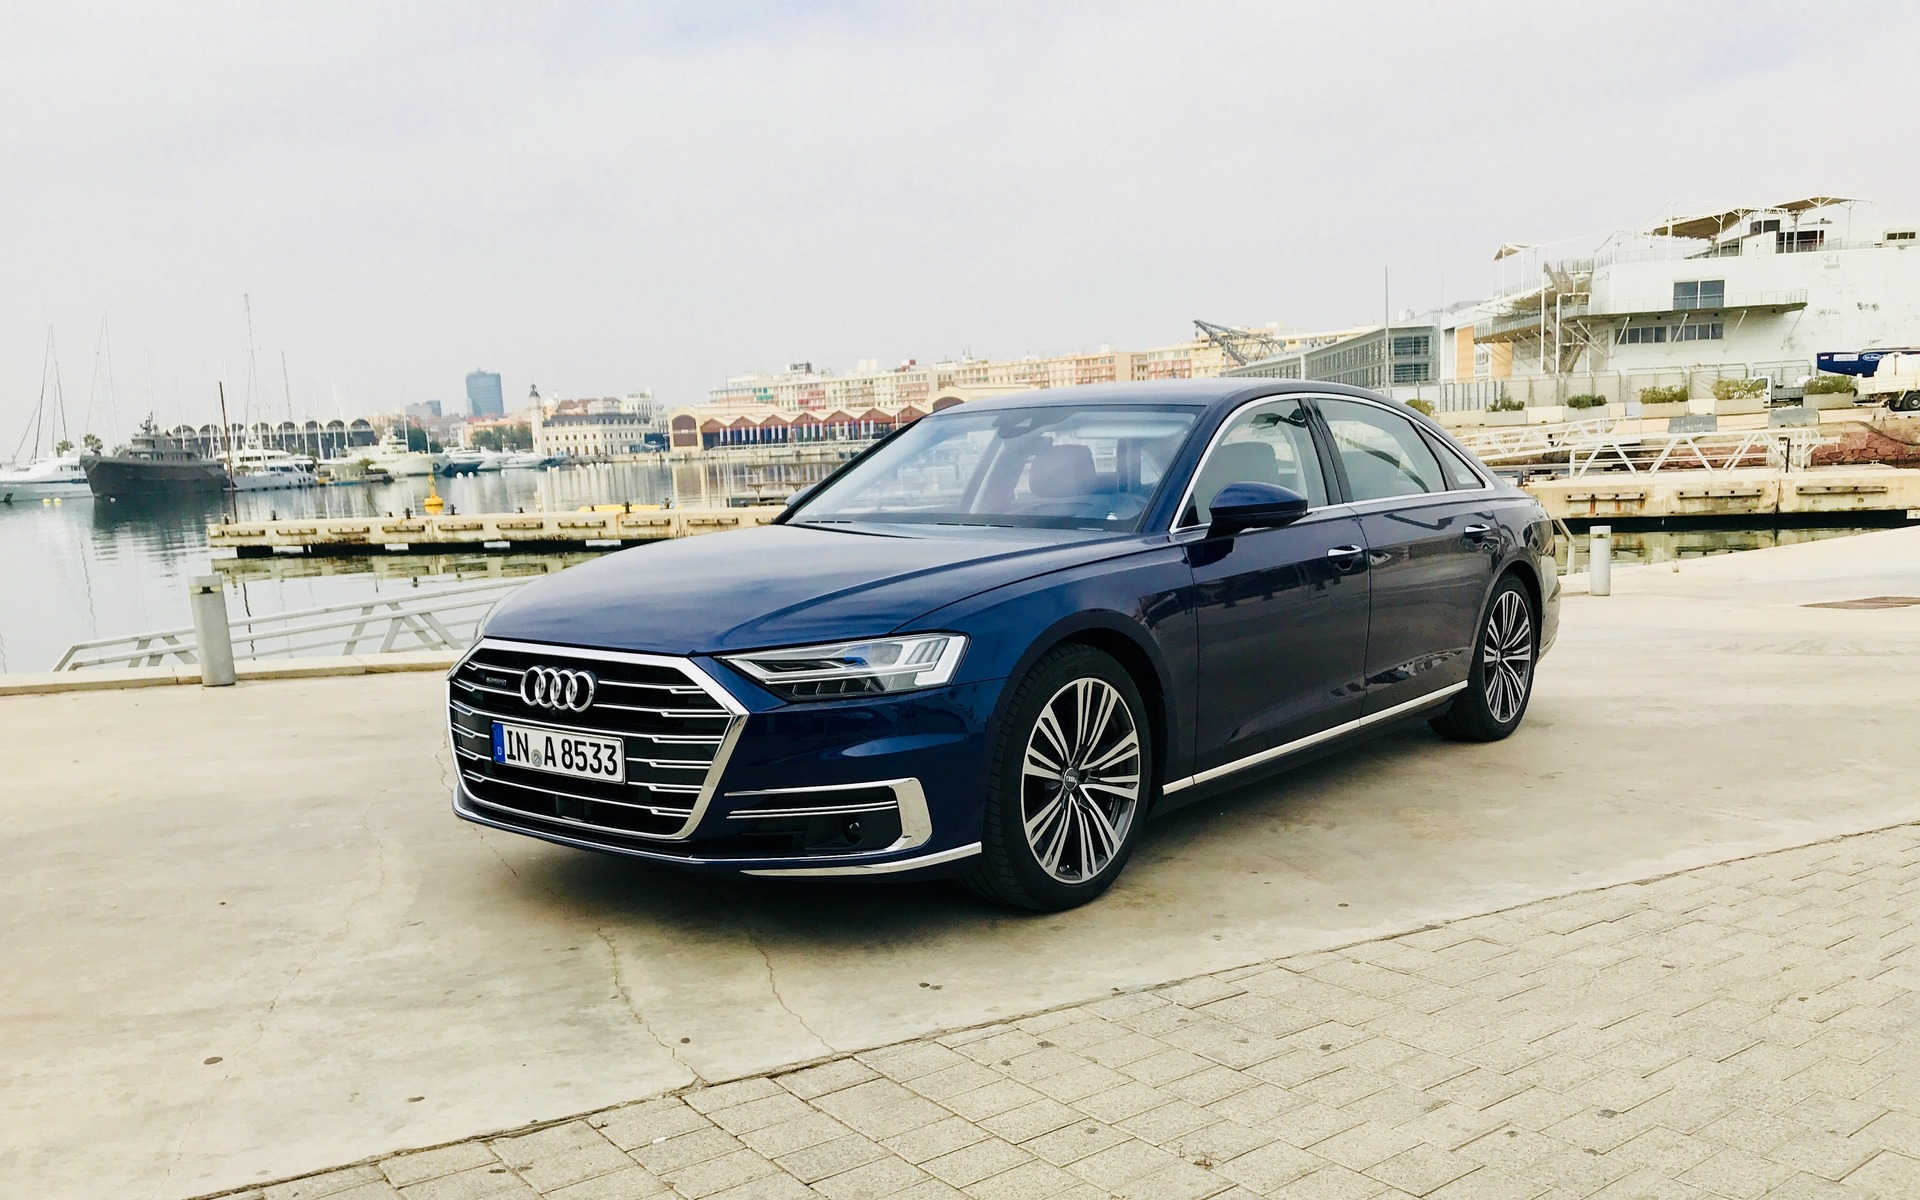 <p>2019 Audi A8 - A clean, understated and conservative look.</p>